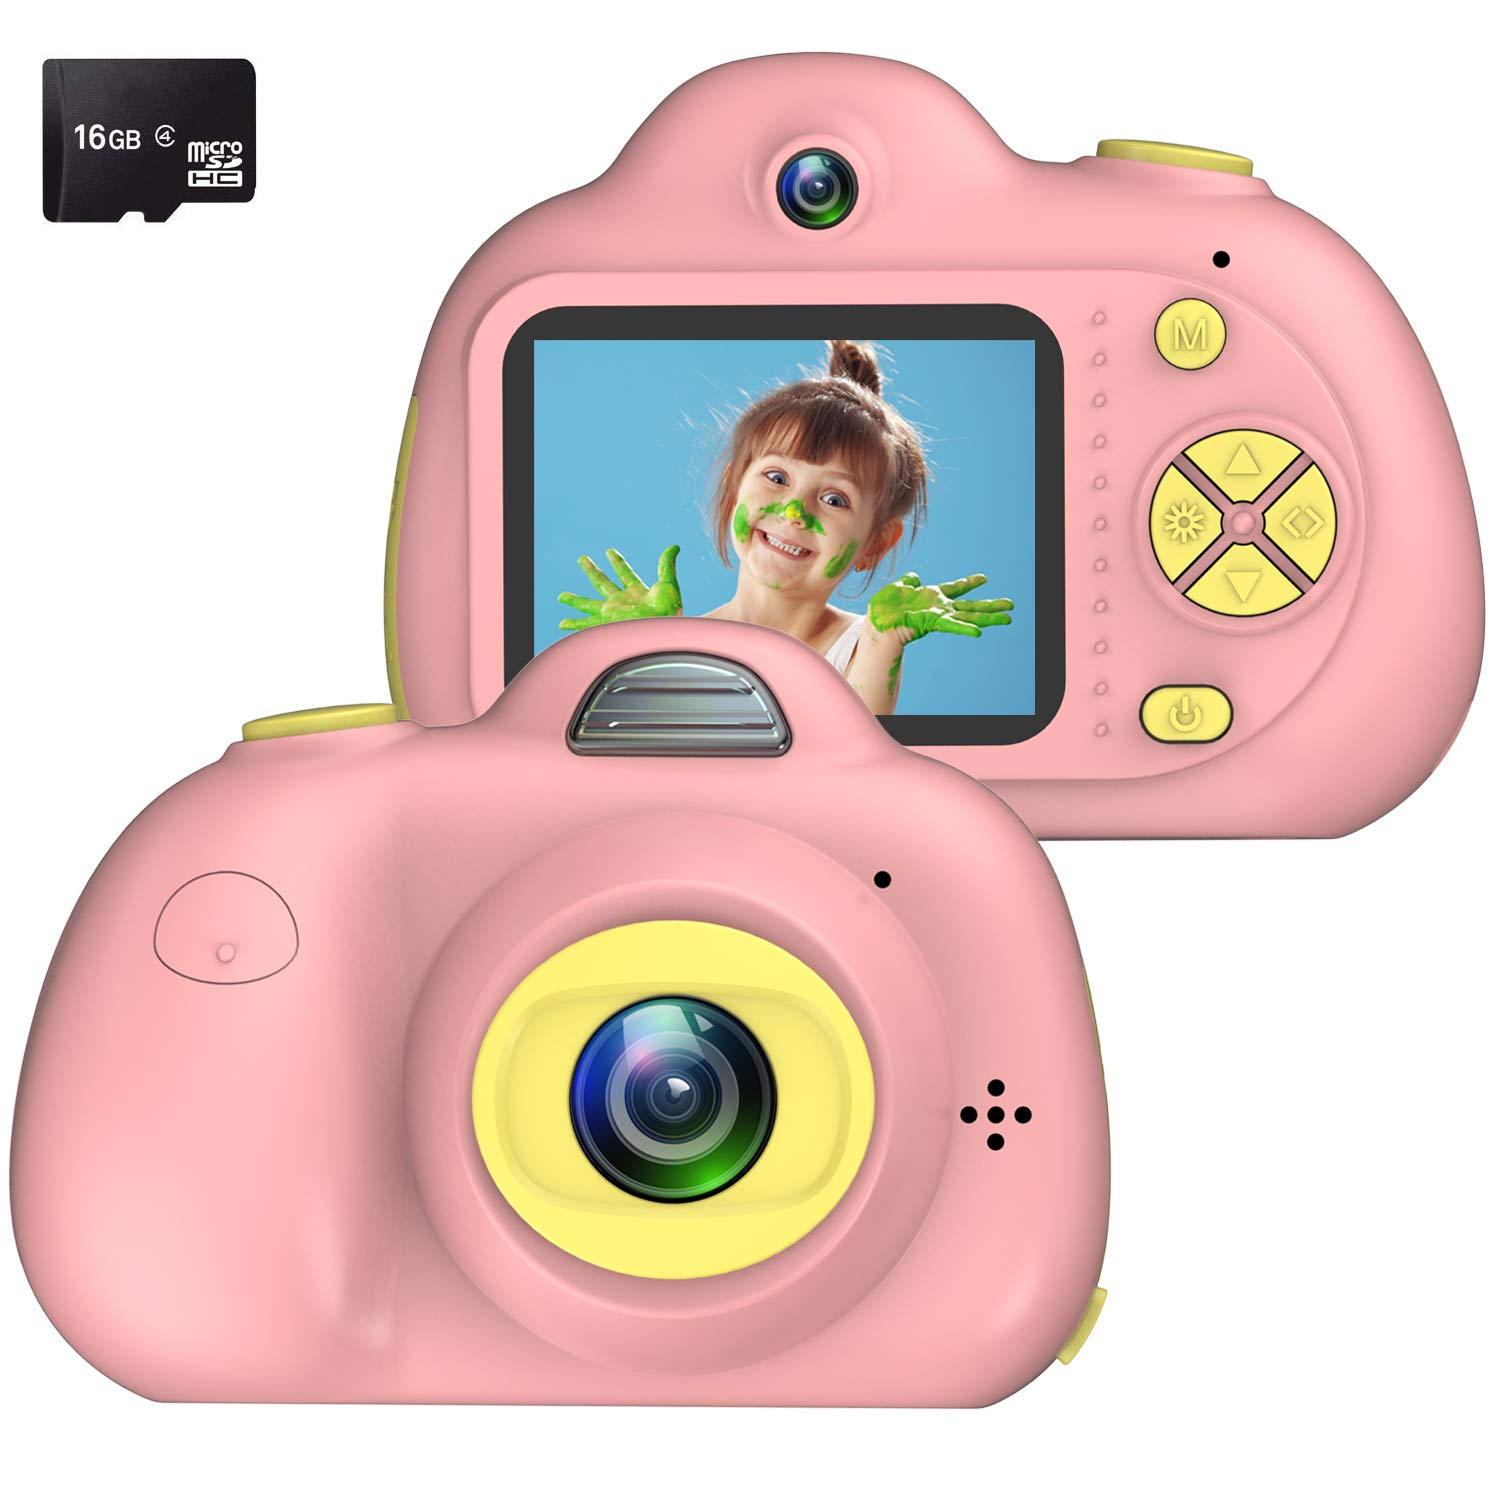 Kids Camera, Dual Cameras 8MP Rechargeable 1080p HD Kids Video Cameras Shockproof Kids Digital Cameras - Best Gift for 4-10 Years Old Girls Boys Party Outdoor Play 16GB TF Card Included (Pink) by Egoelife (Image #1)